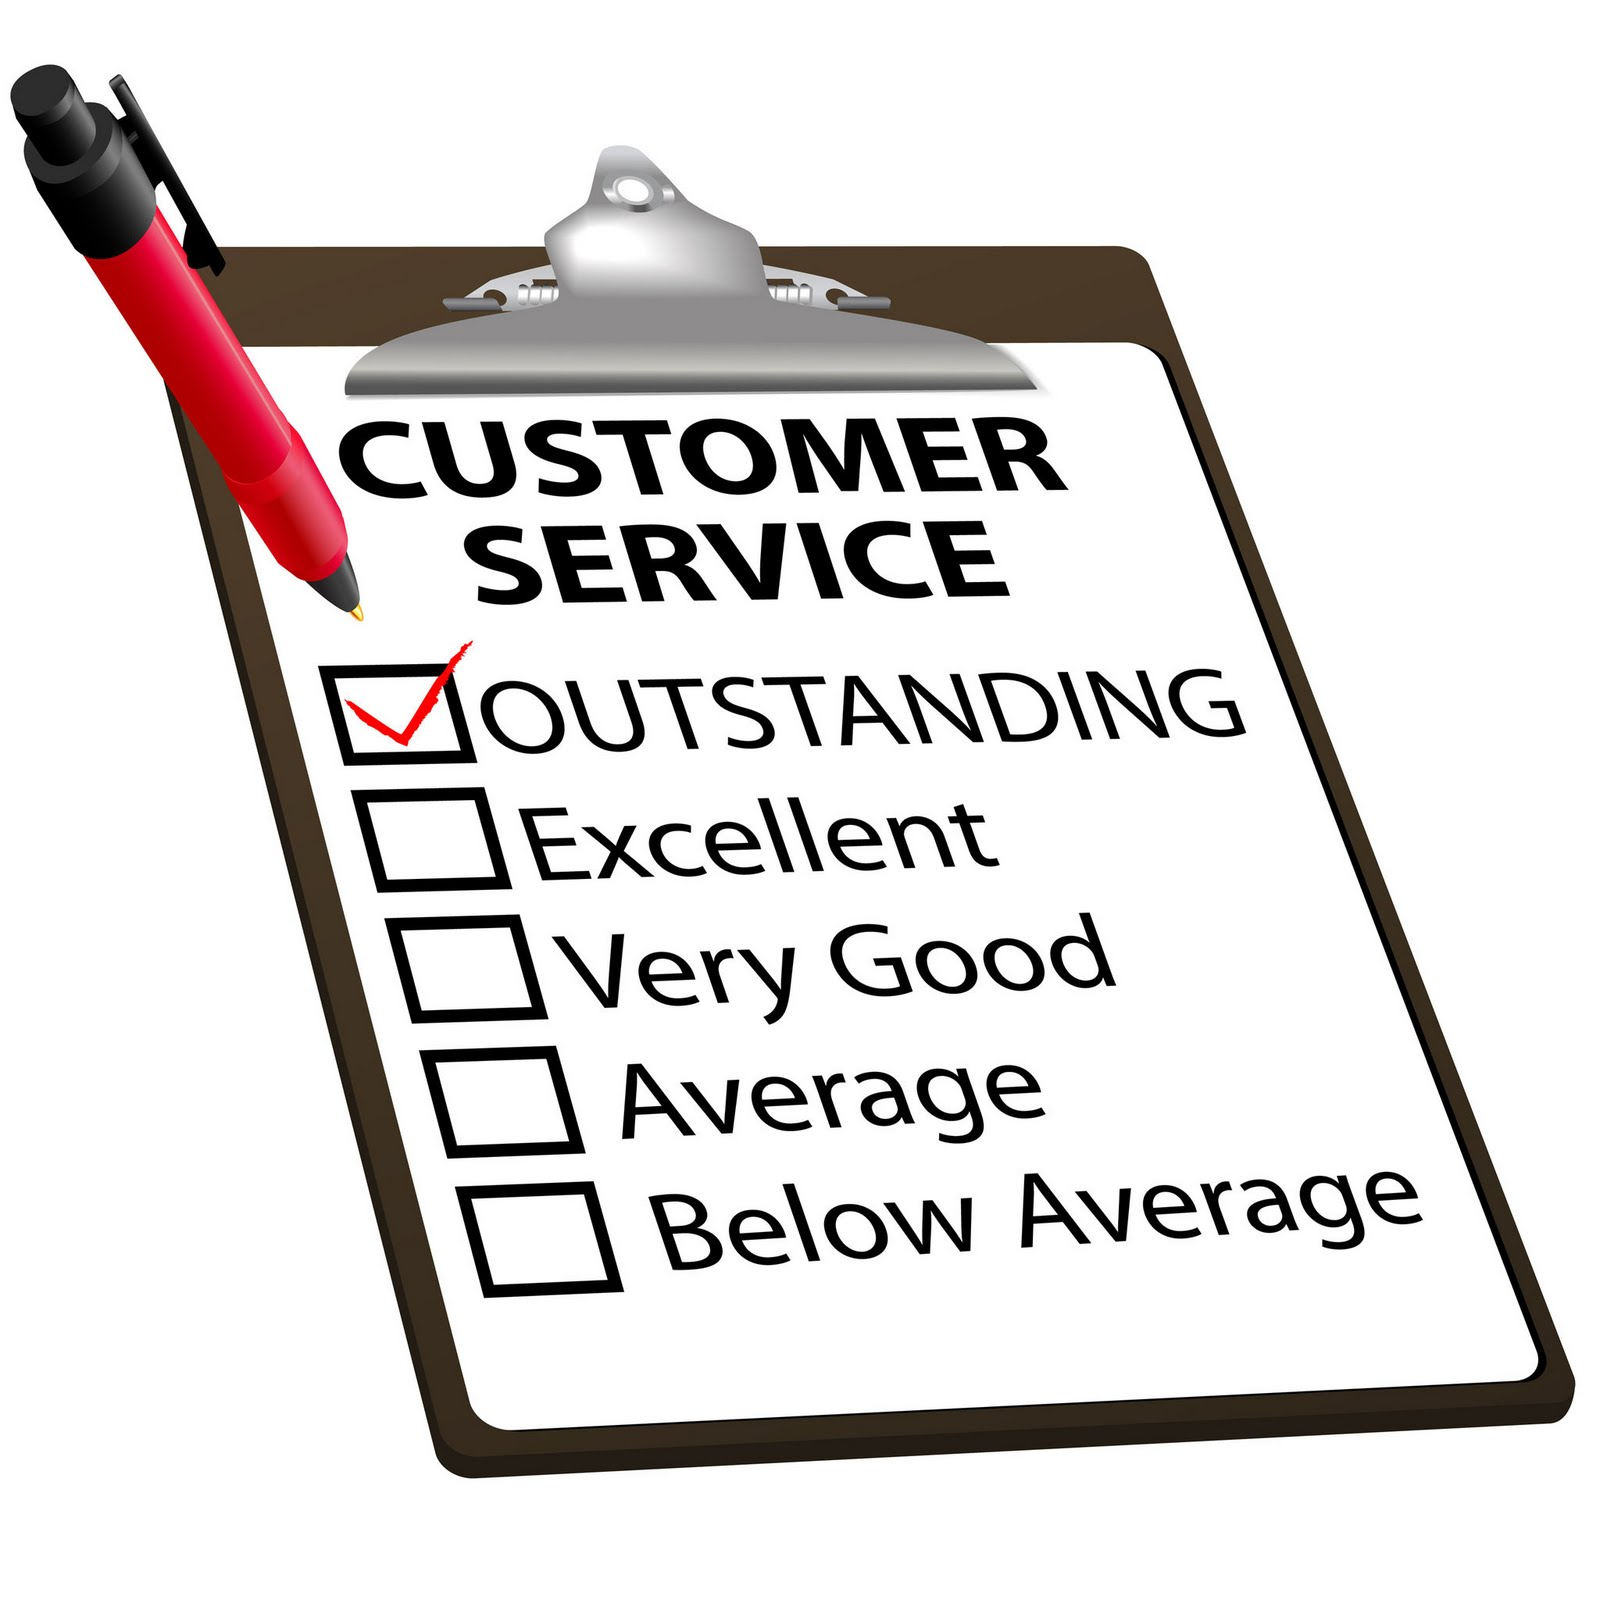 Acf Consulting Blog  The Art Of Customer Service